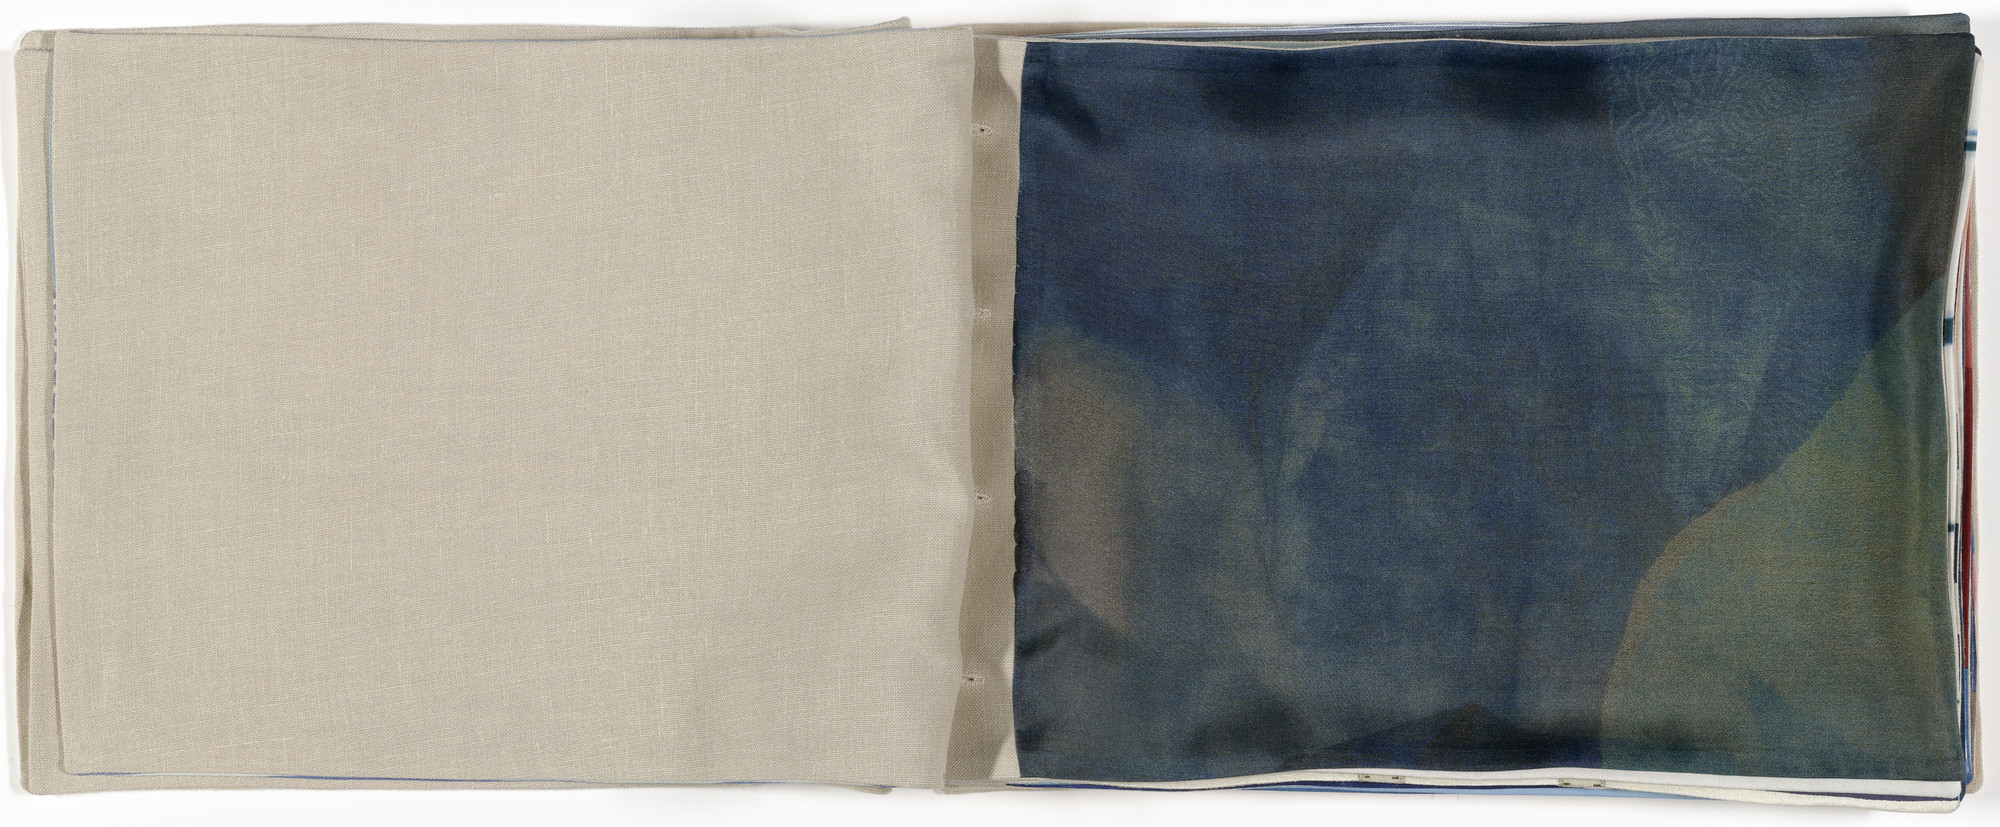 Louise Bourgeois. Untitled, no. 3 of 23, from the illustrated book, Ode à la Bièvre. 2007